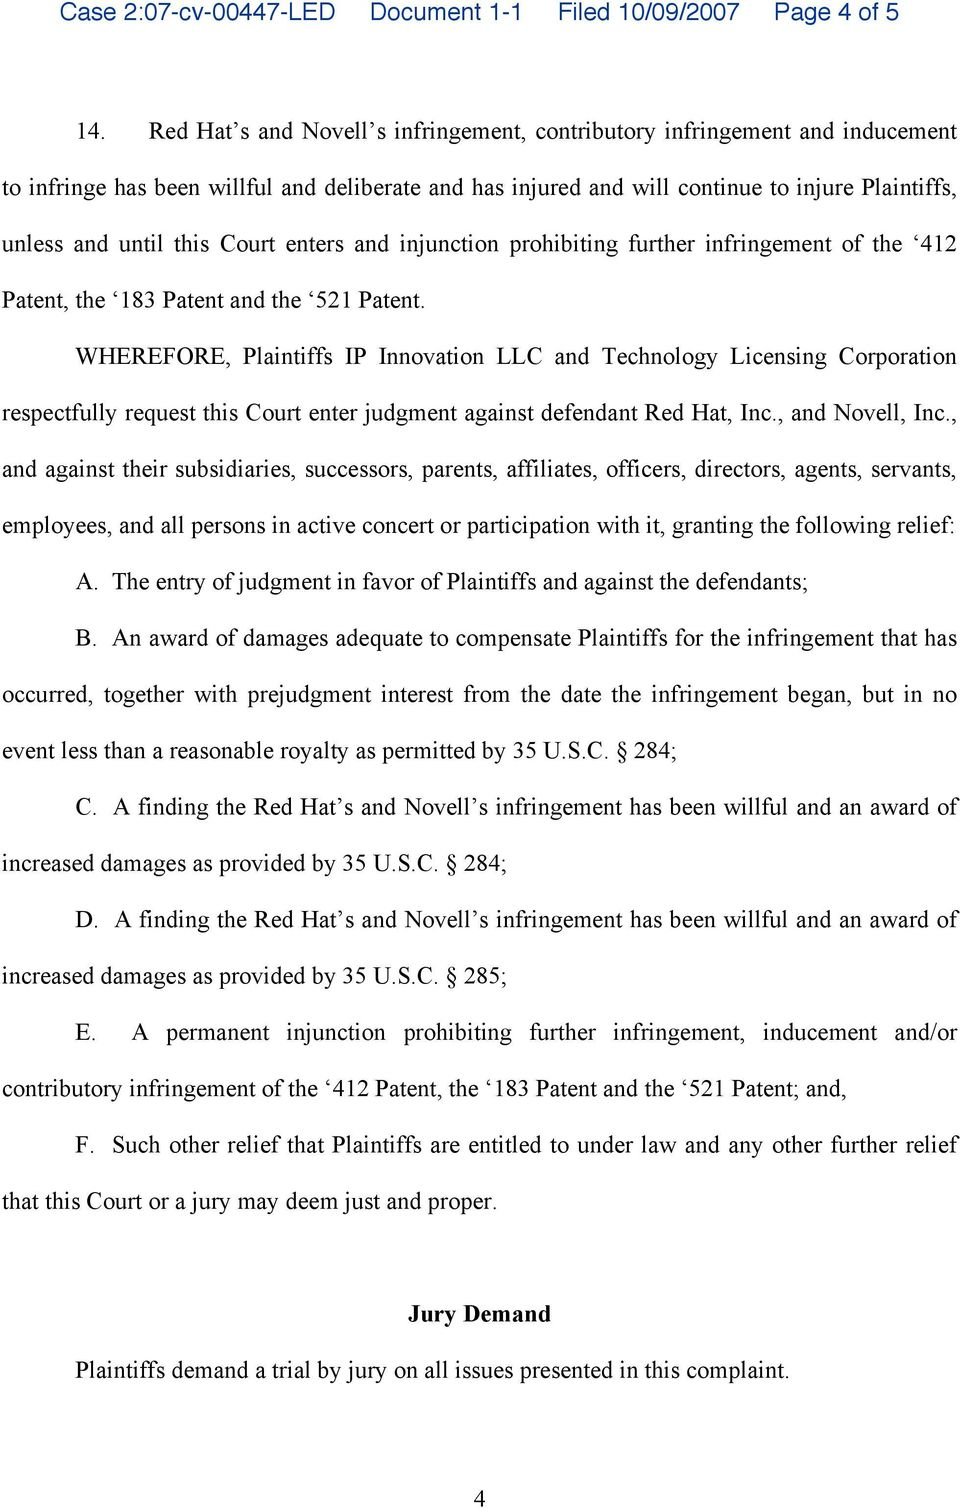 Court enters and injunction prohibiting further infringement of the 412 Patent, the 183 Patent and the 521 Patent.